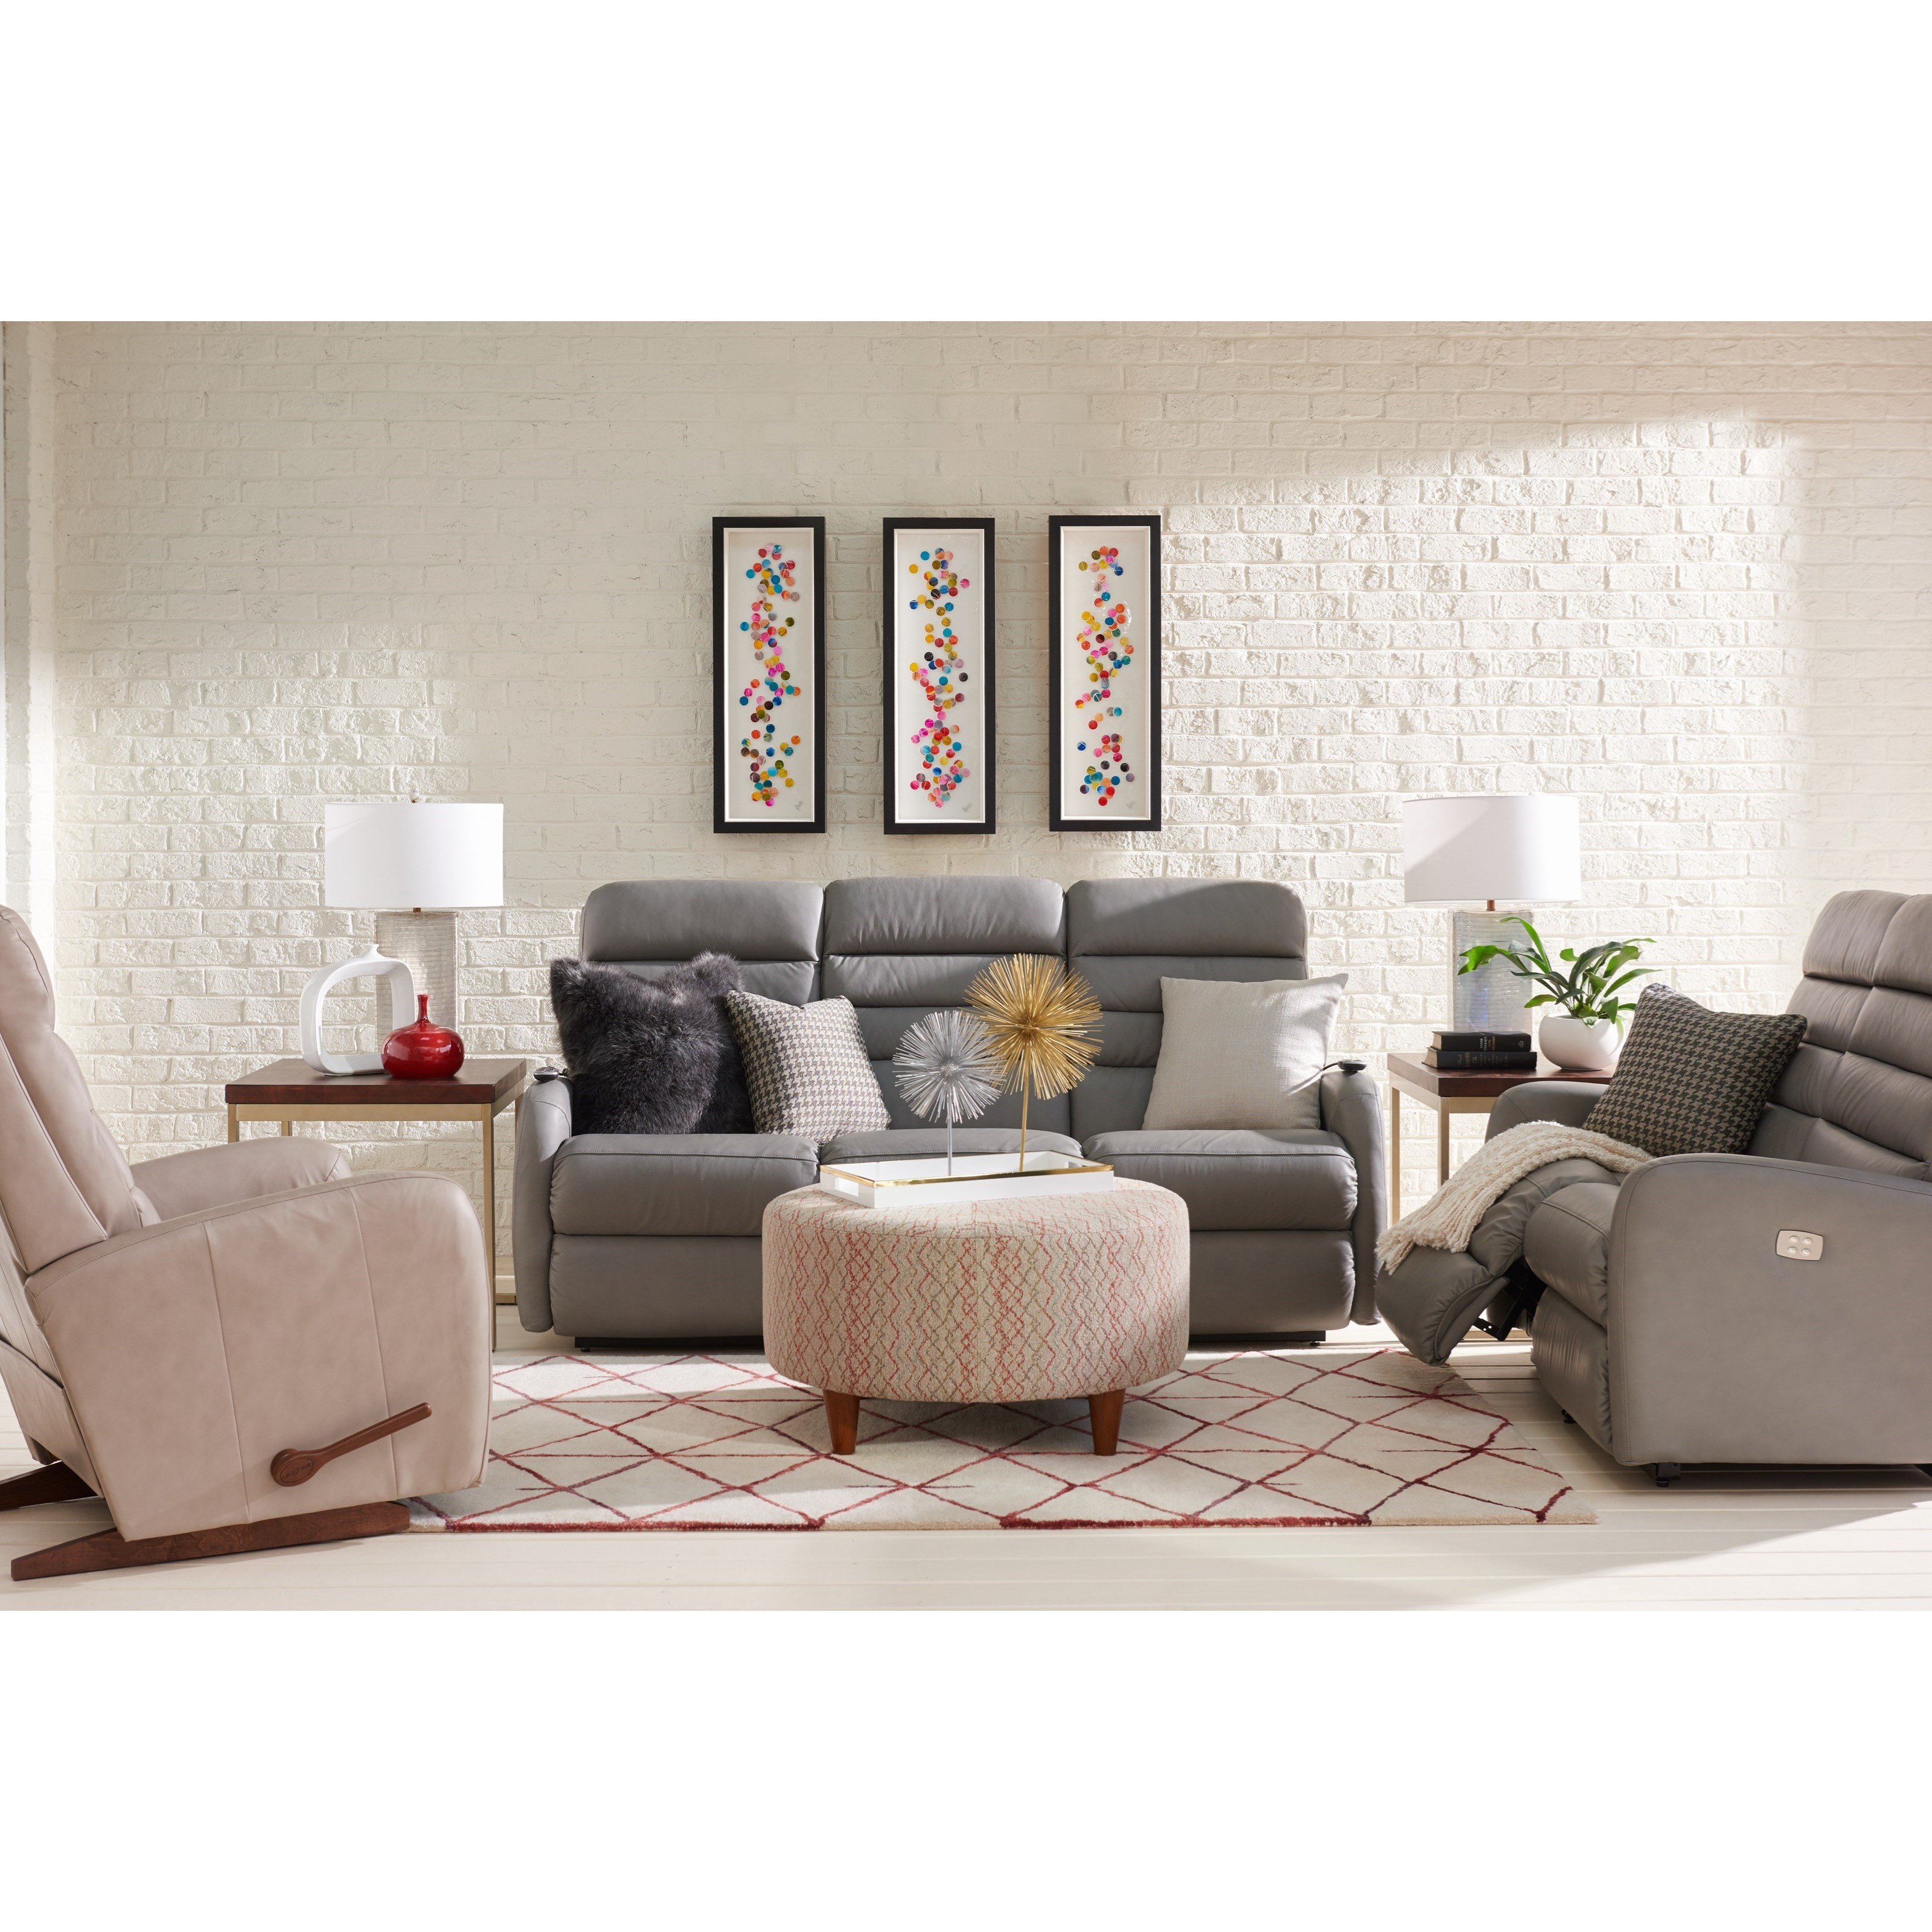 stores with creative house most moines patio decorating design lovely interior gallery in ideas home outdoor marvelous des styles small attractive ia furniture